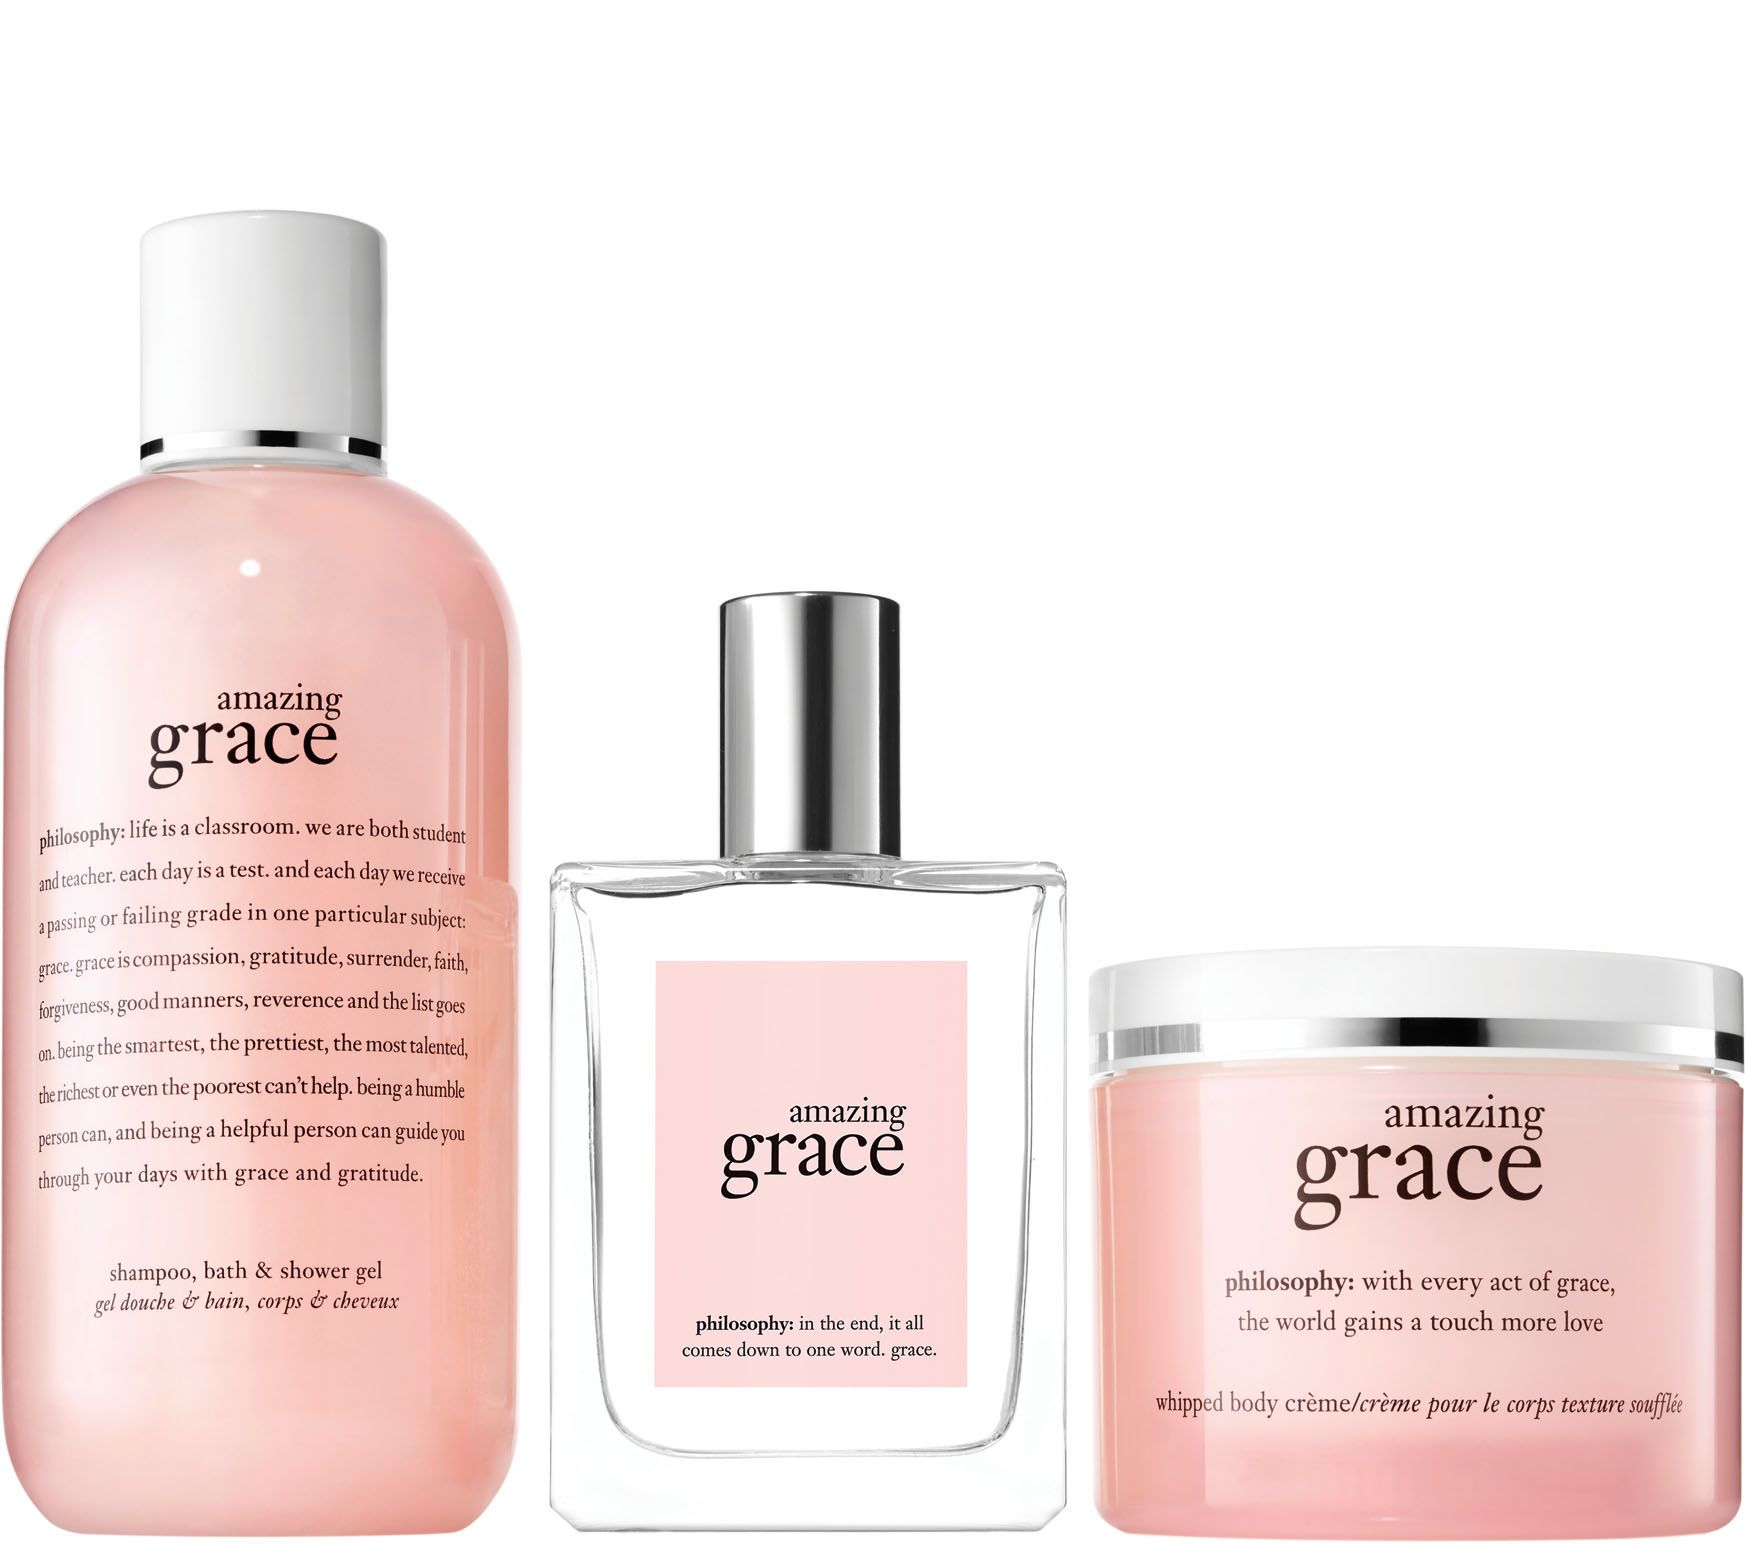 Philosophy amazing grace set — qvc